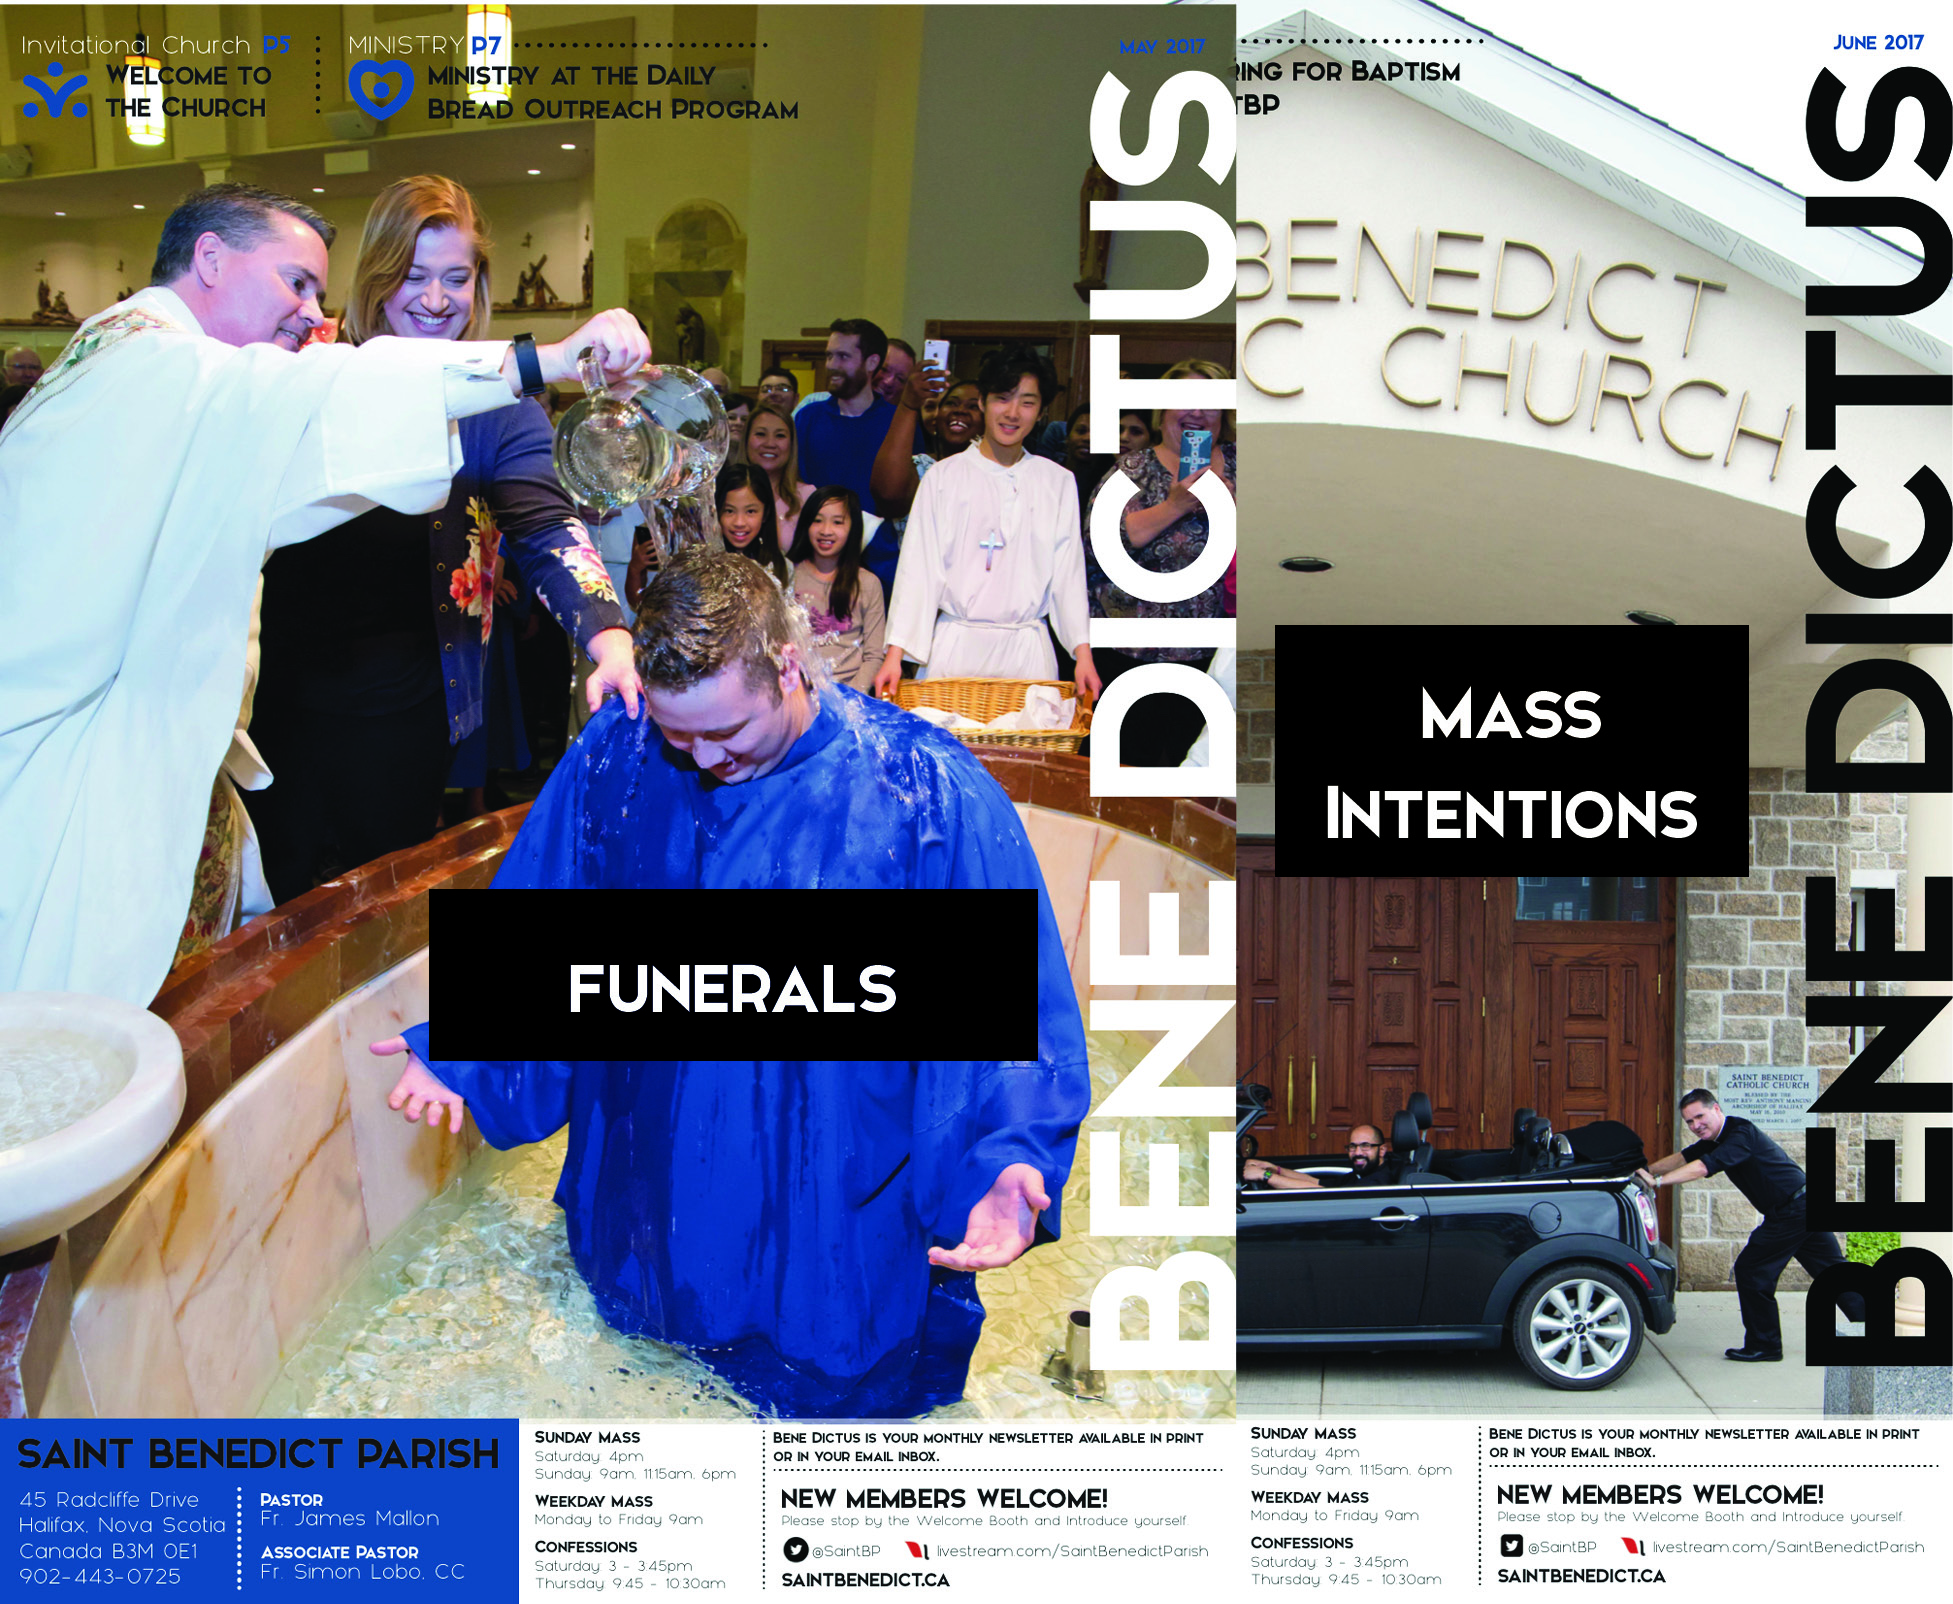 For Web Pg on Funerals - BD Covers.jpg